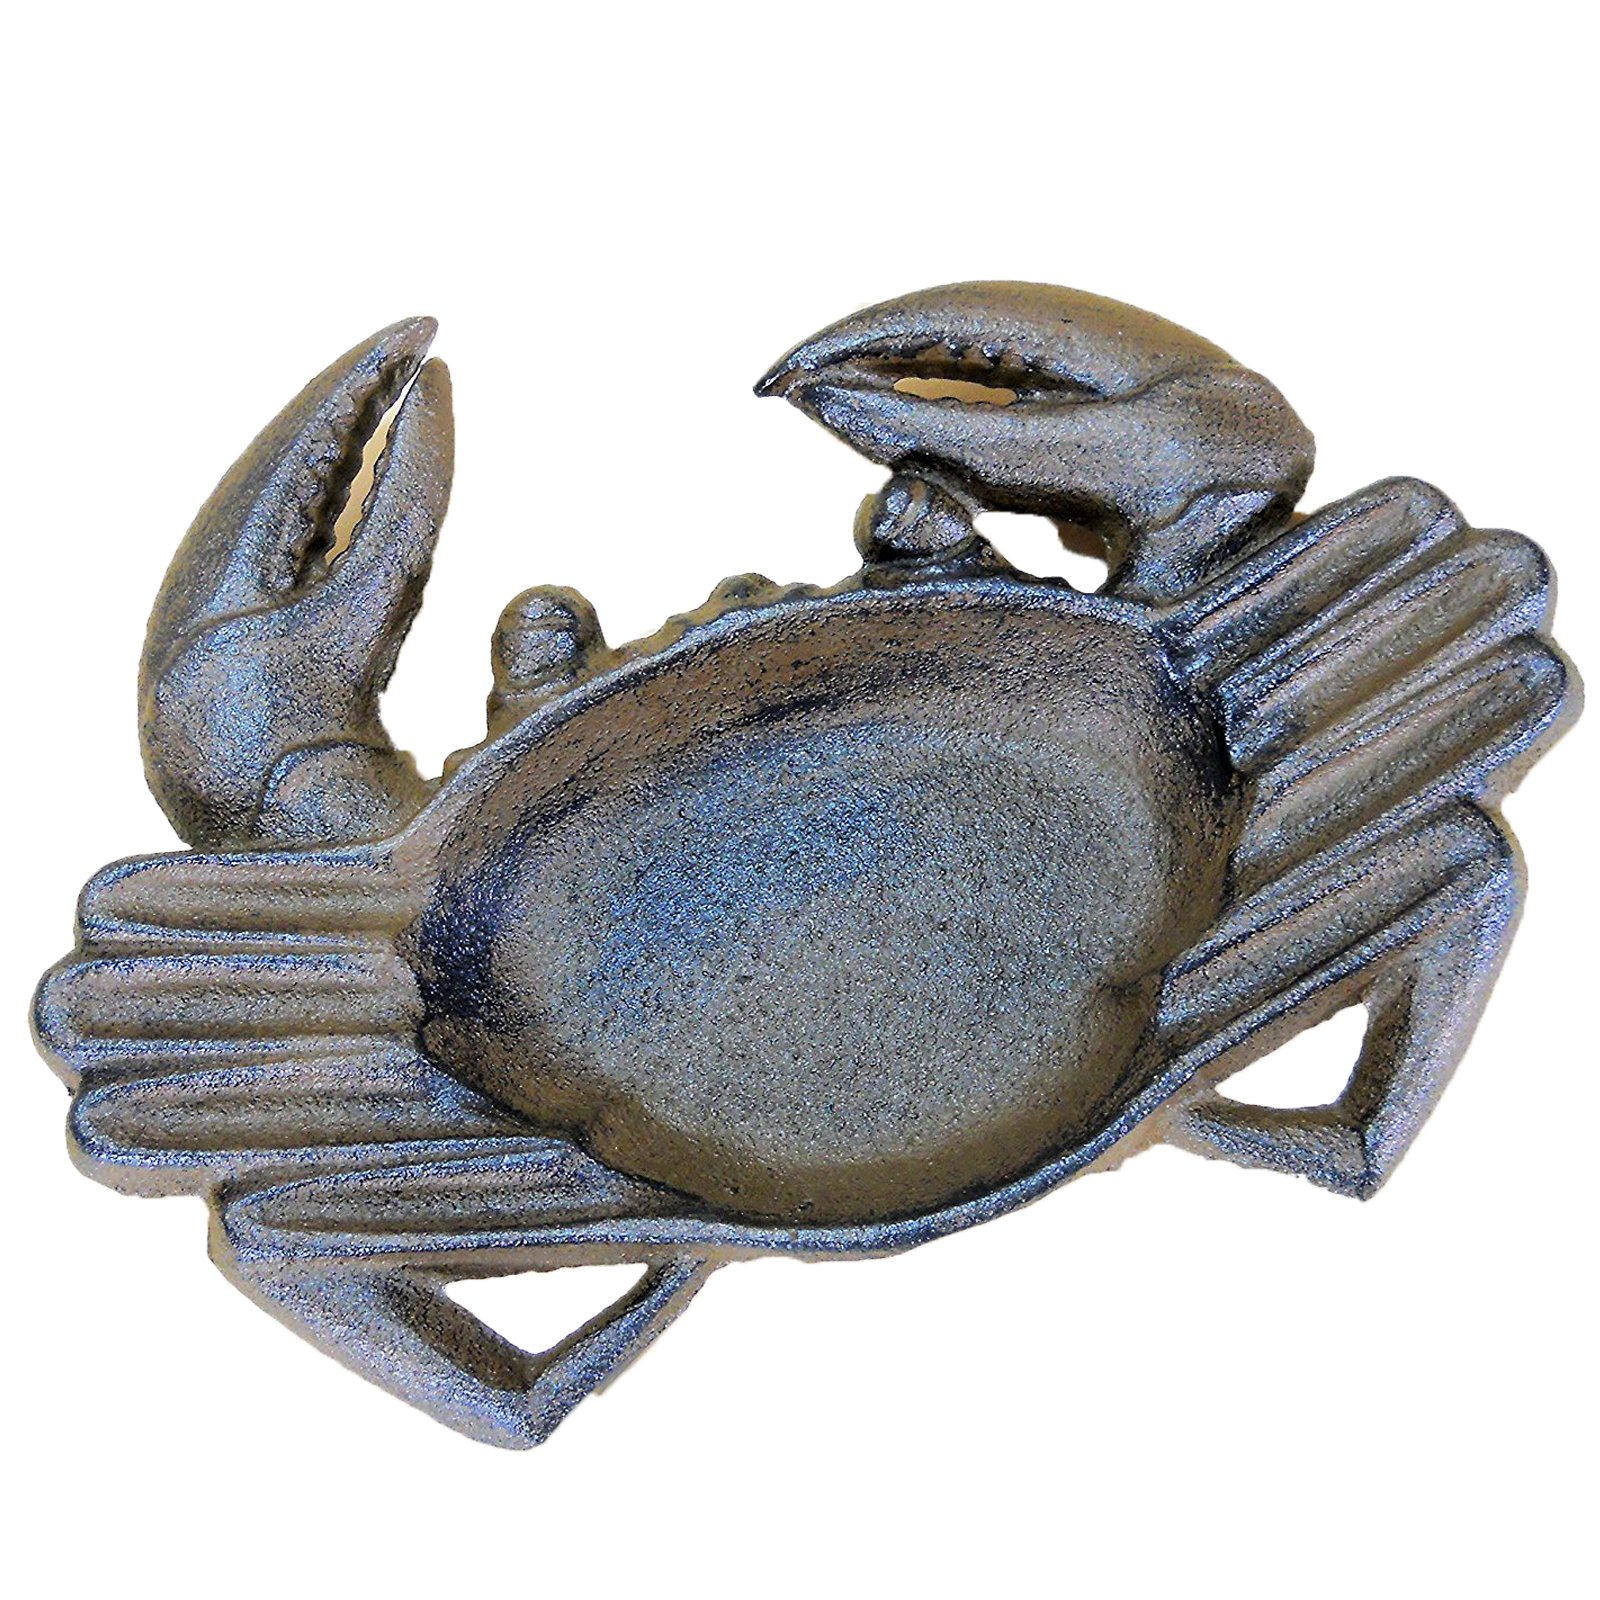 The Crabby Nook Crab Ashtray Cast Iron for Cigars Cigarettes Outdoor Nautical Decor